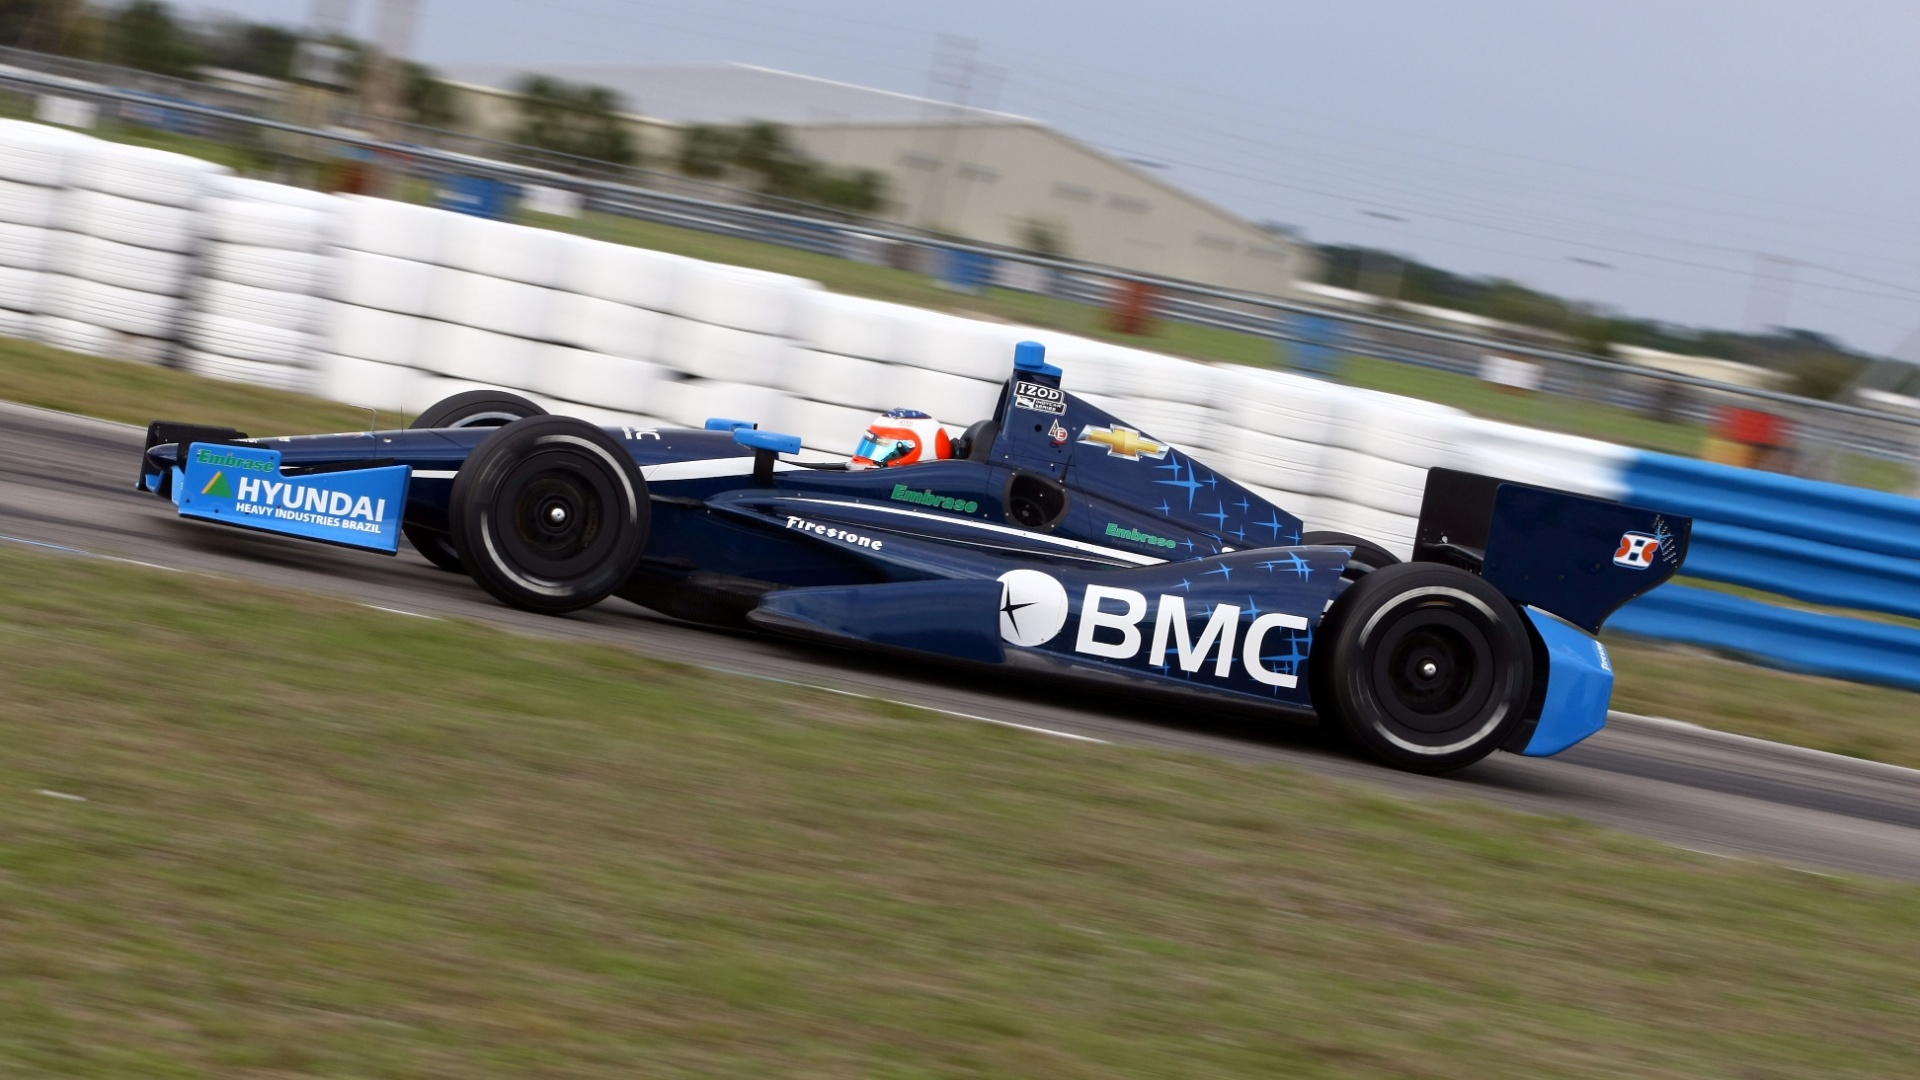 Rubens Barrichello em Sebring, durante seu primeiro treino oficial na Indy